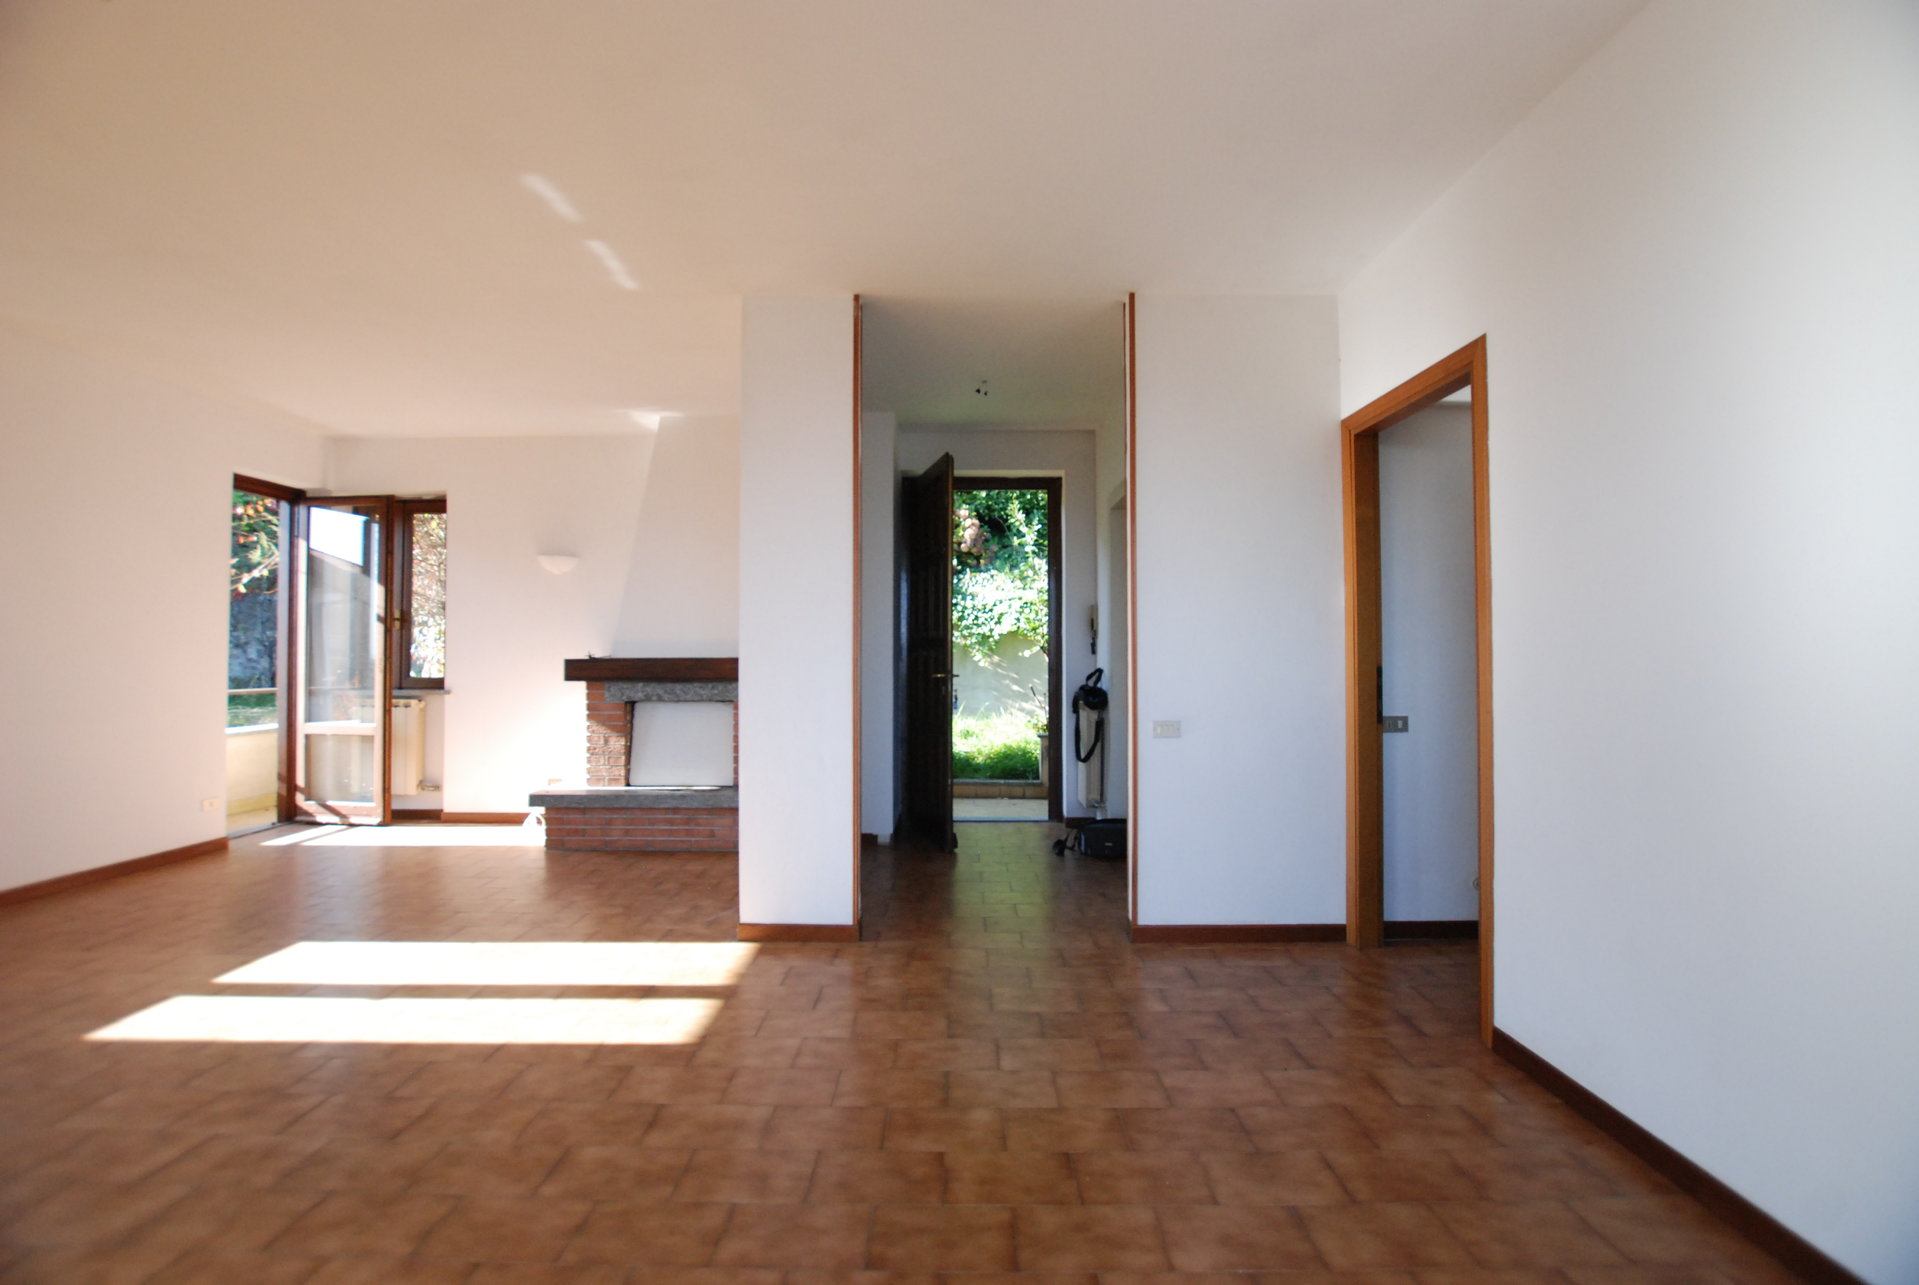 Sale apartment in Belgirate